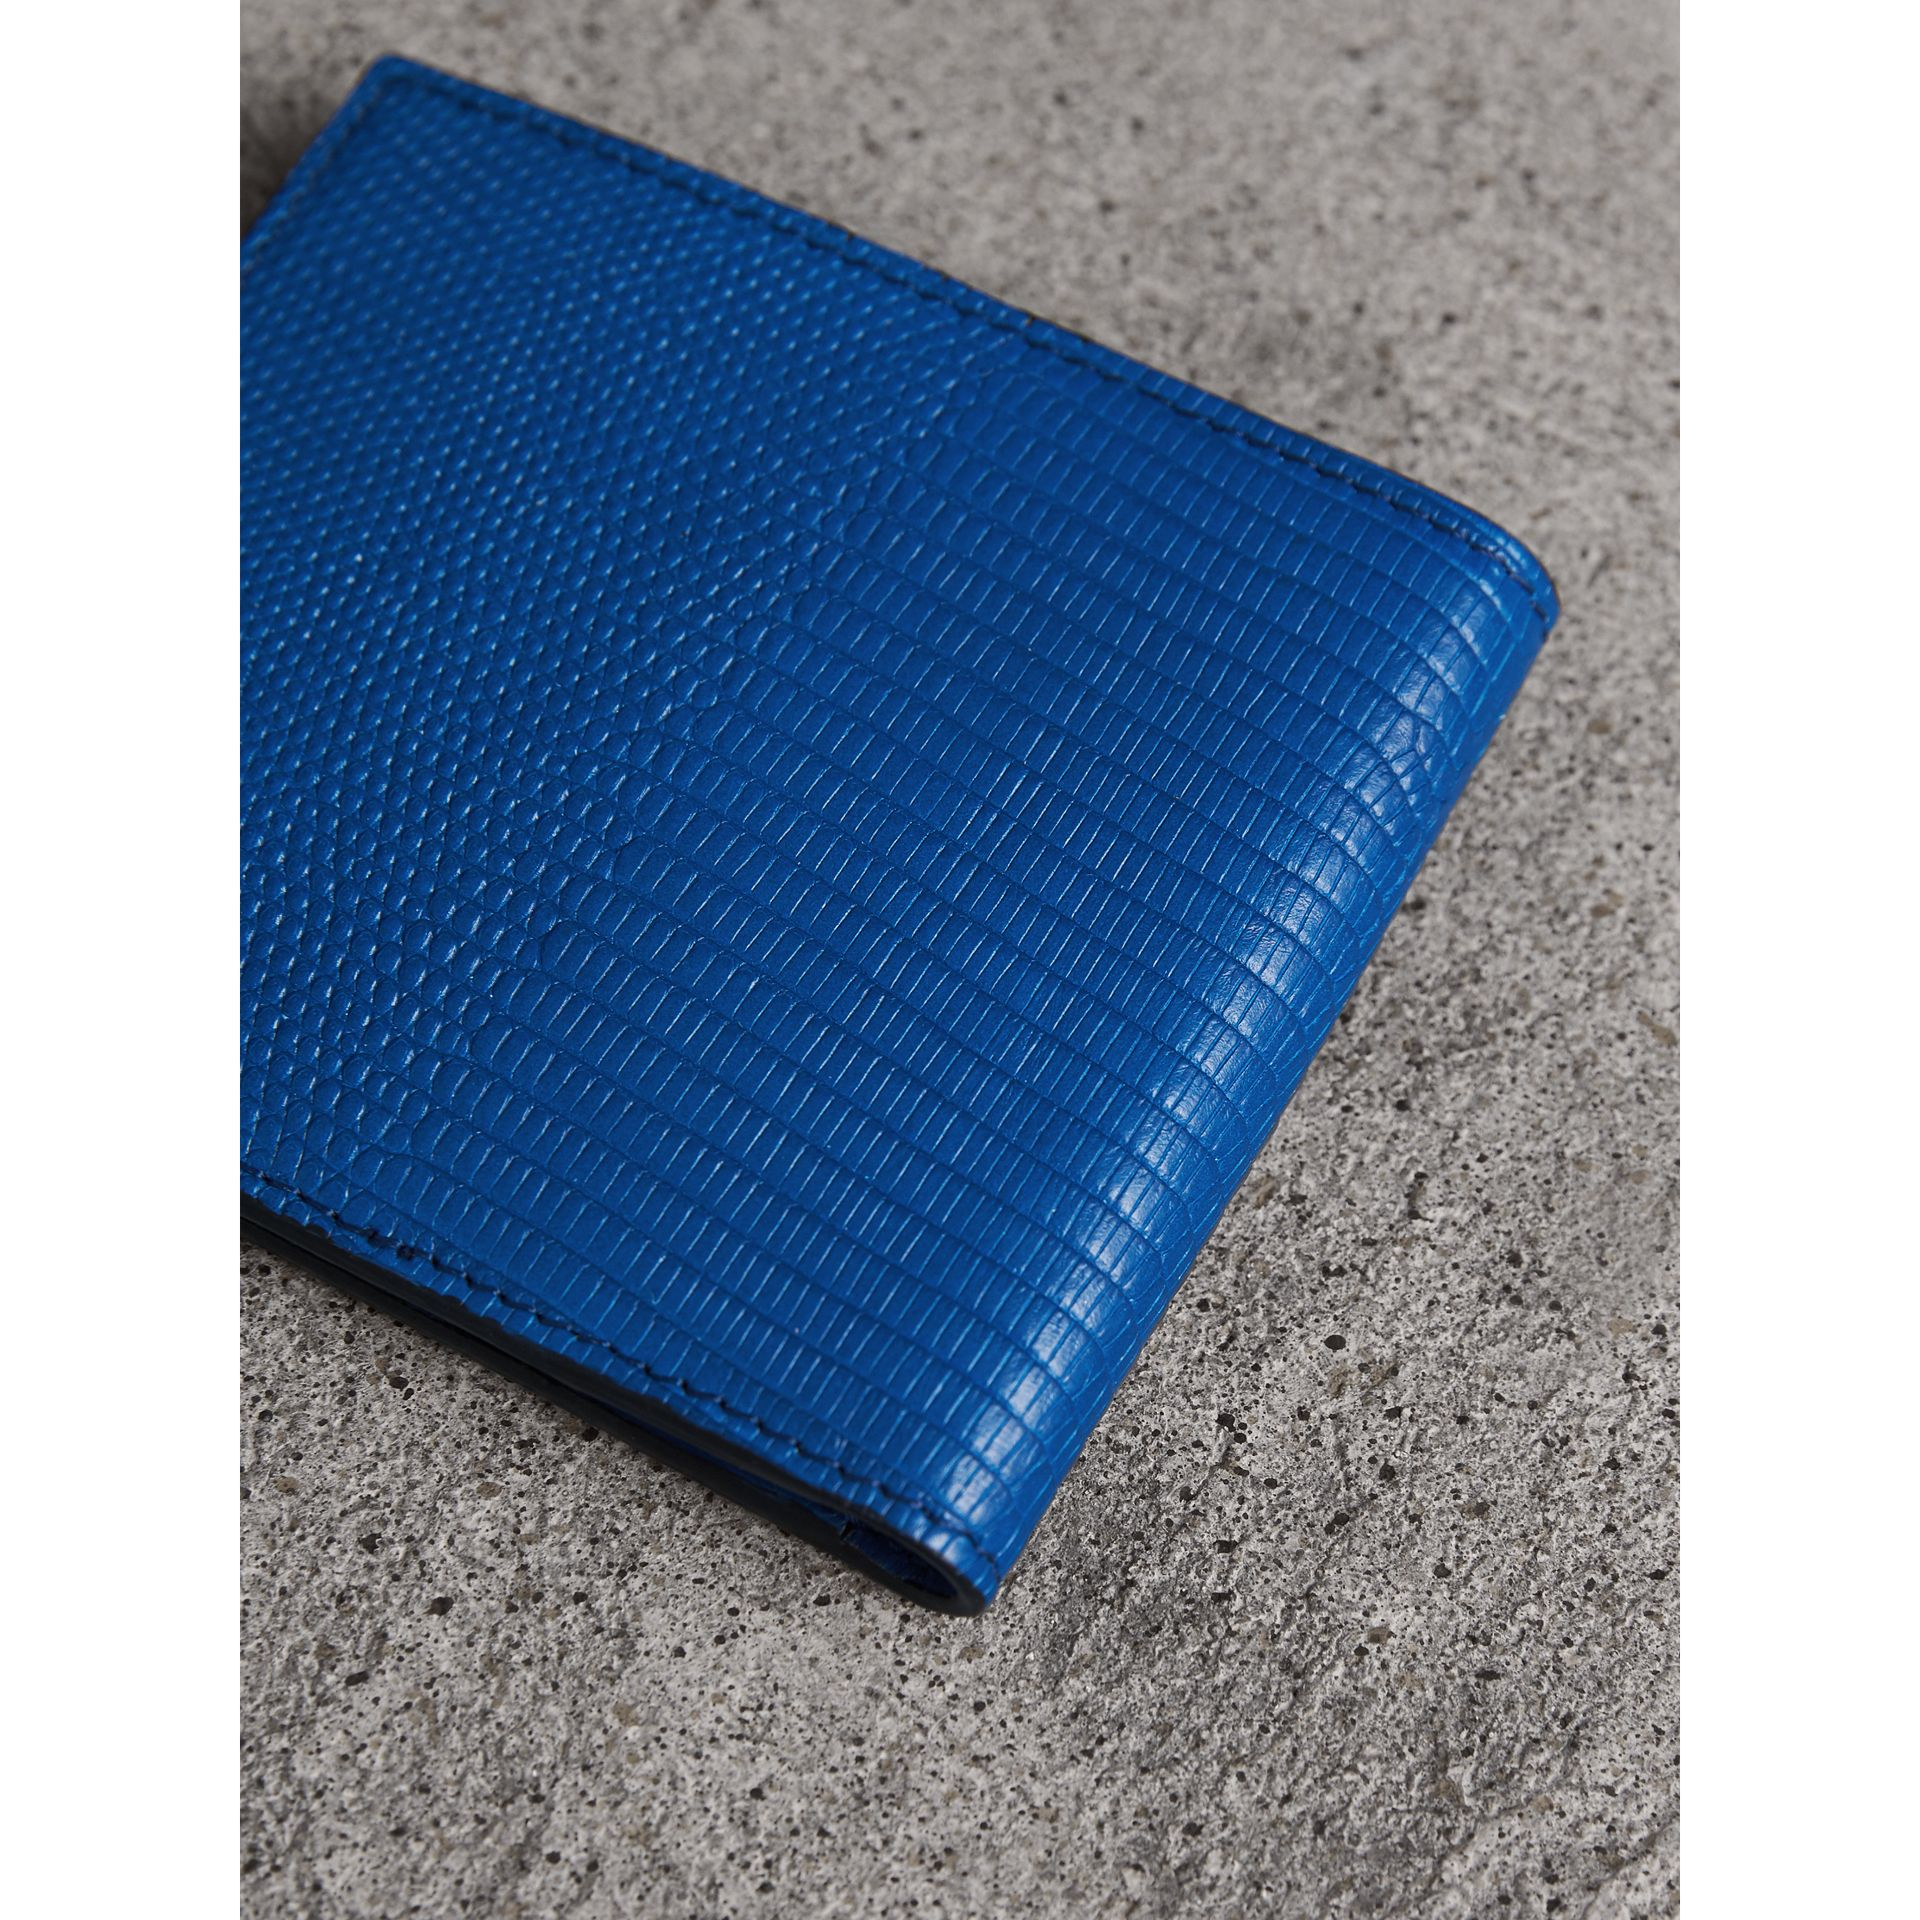 Lizard International Bifold Wallet in Sapphire Blue - Men | Burberry Australia - gallery image 1